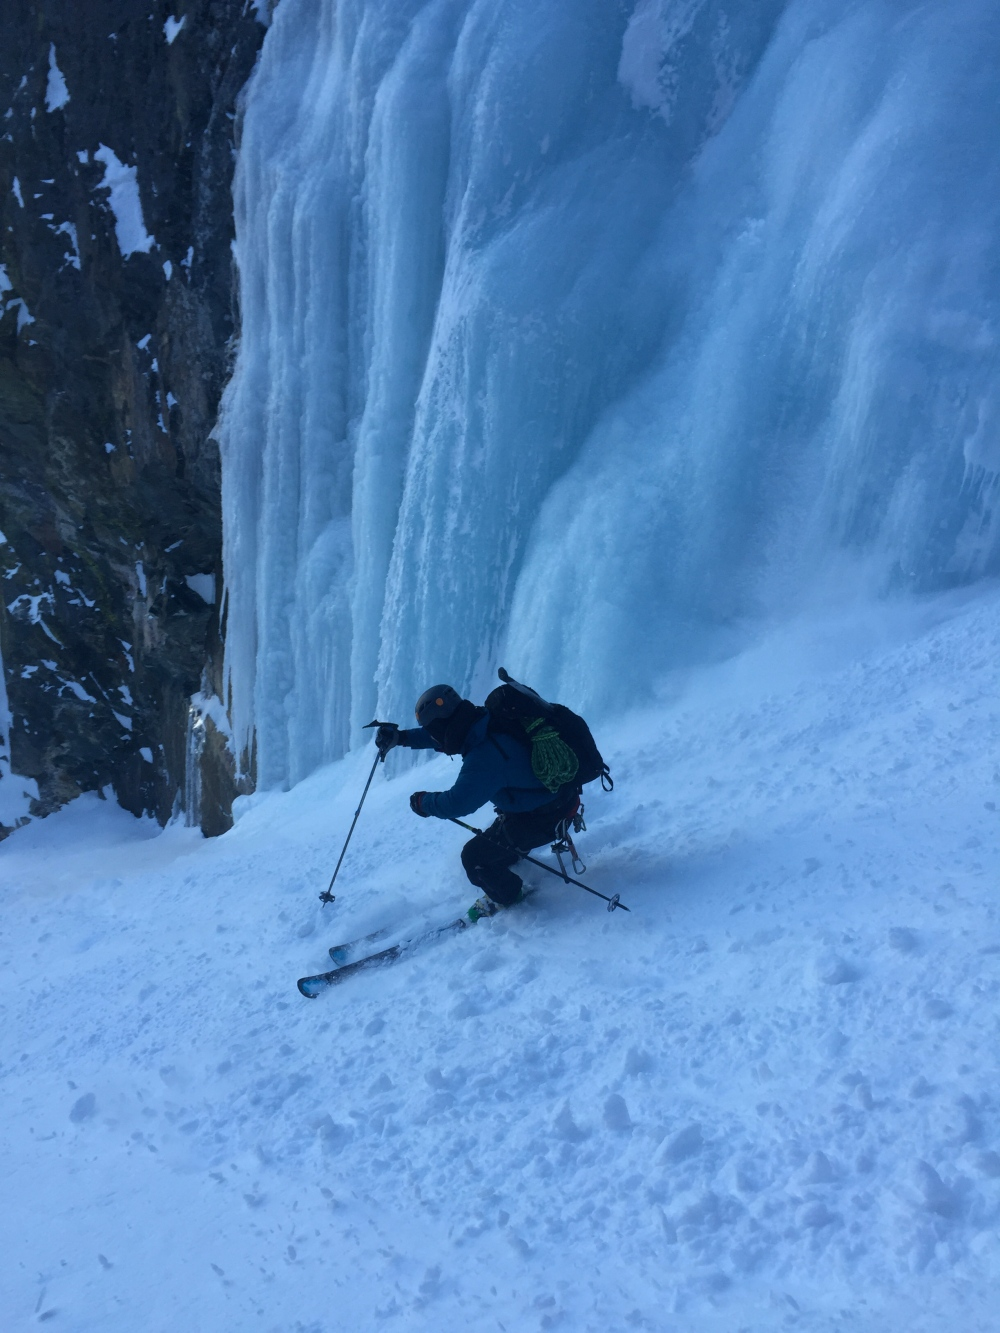 Pete skiing through the Ice Alley.